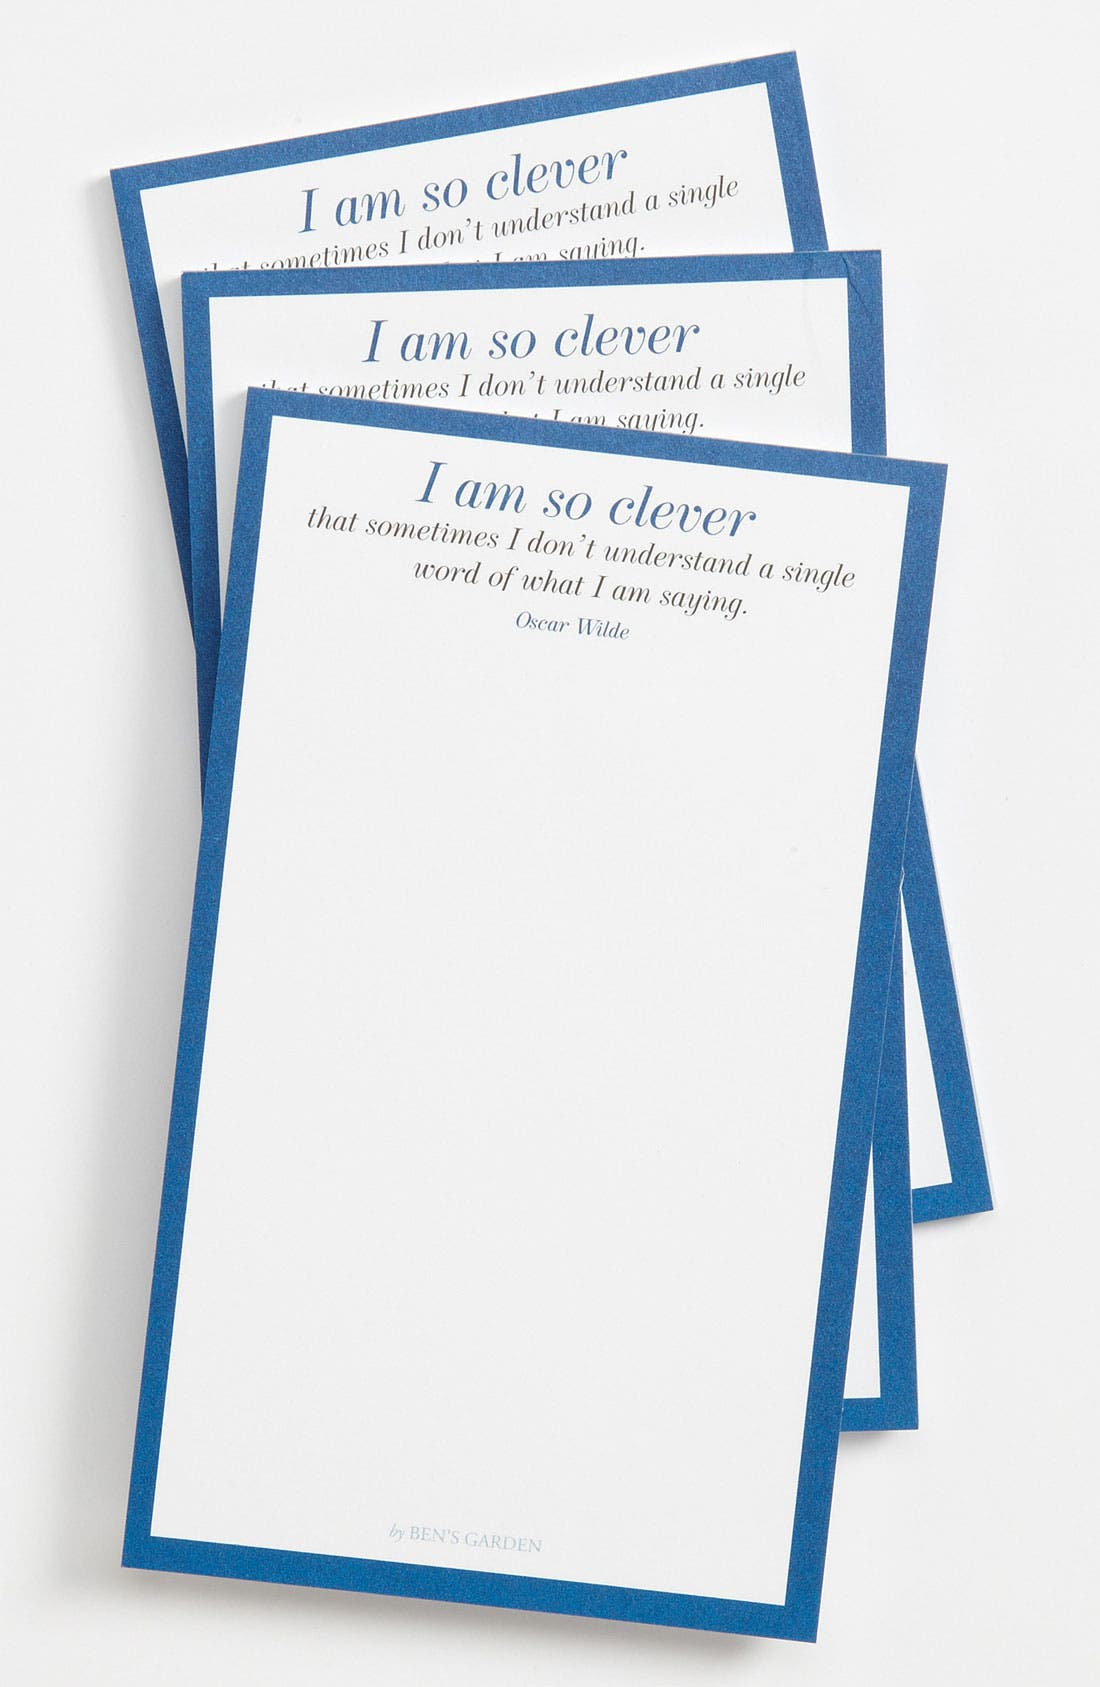 Main Image - Ben's Garden 'I Am So Clever' Notepads (3-Pack)